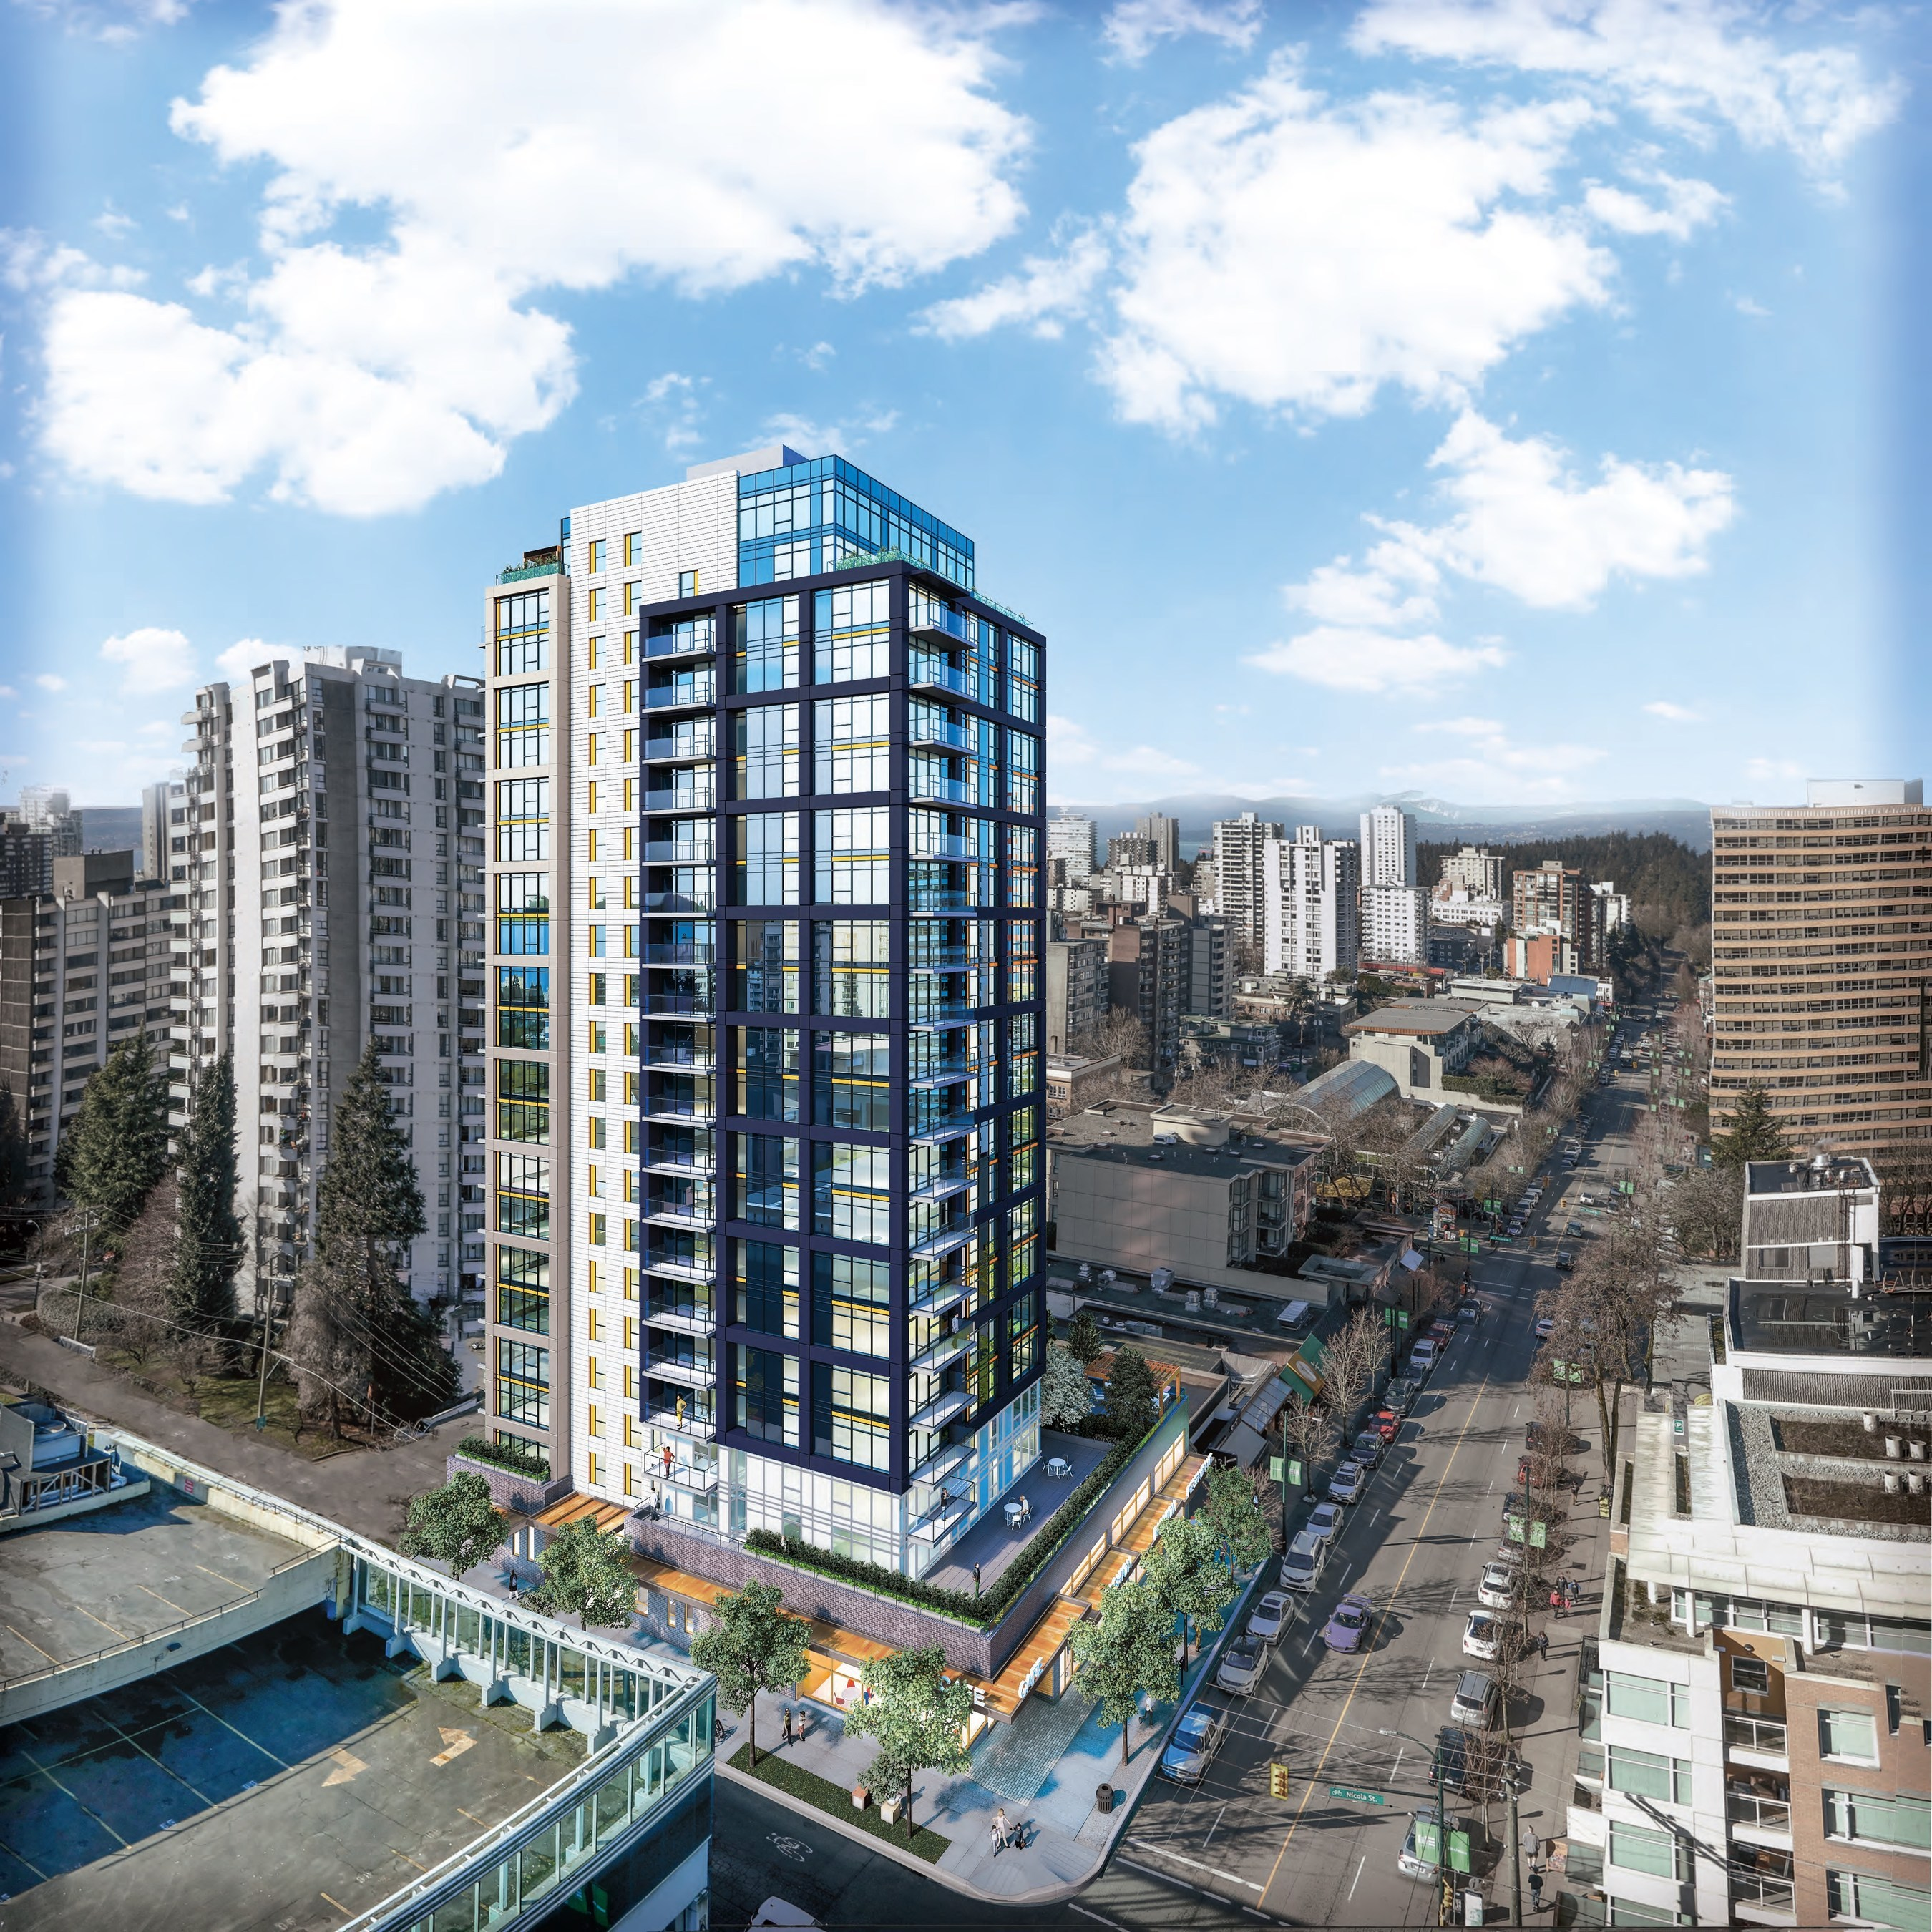 West End Vancouver: 21-story Rental Tower Breaks Ground In Vancouver's West